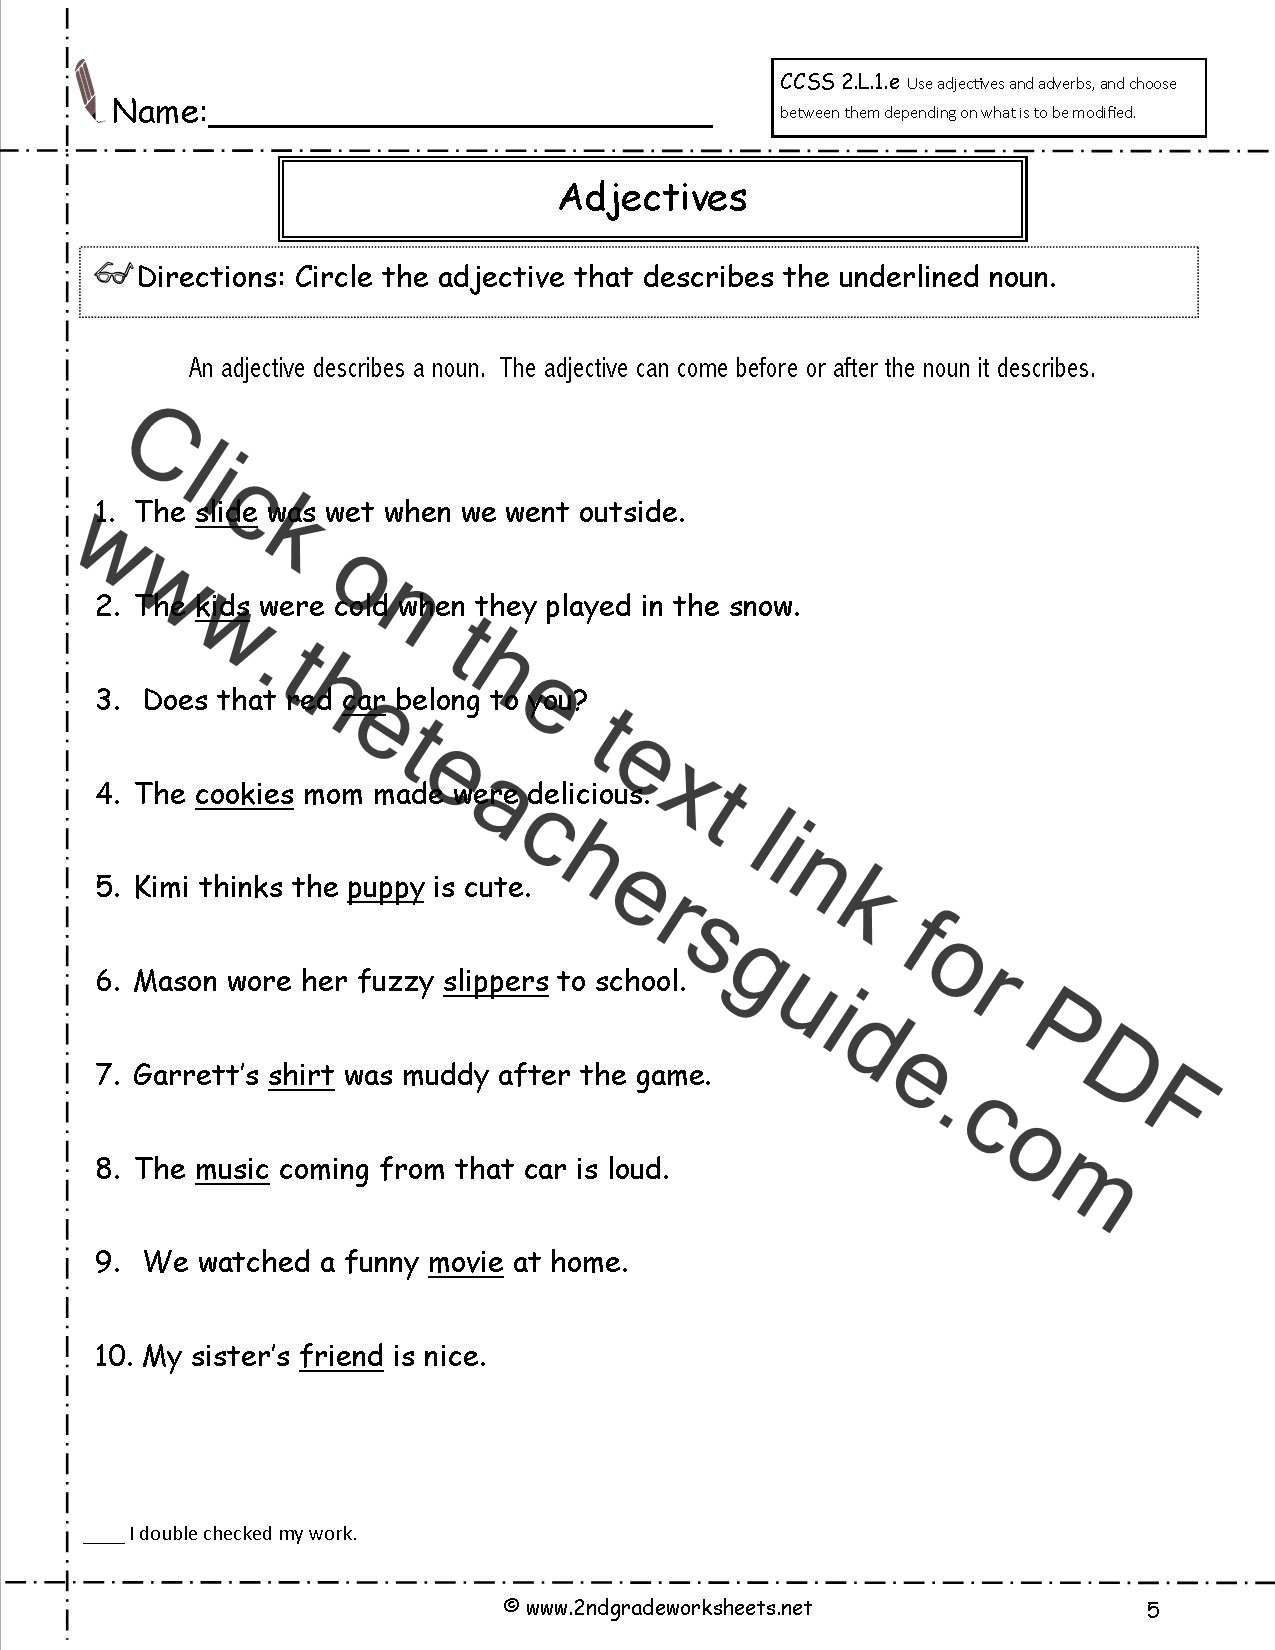 Free Using Adjectives and Adverbs Worksheets – Adjective Worksheets 2nd Grade